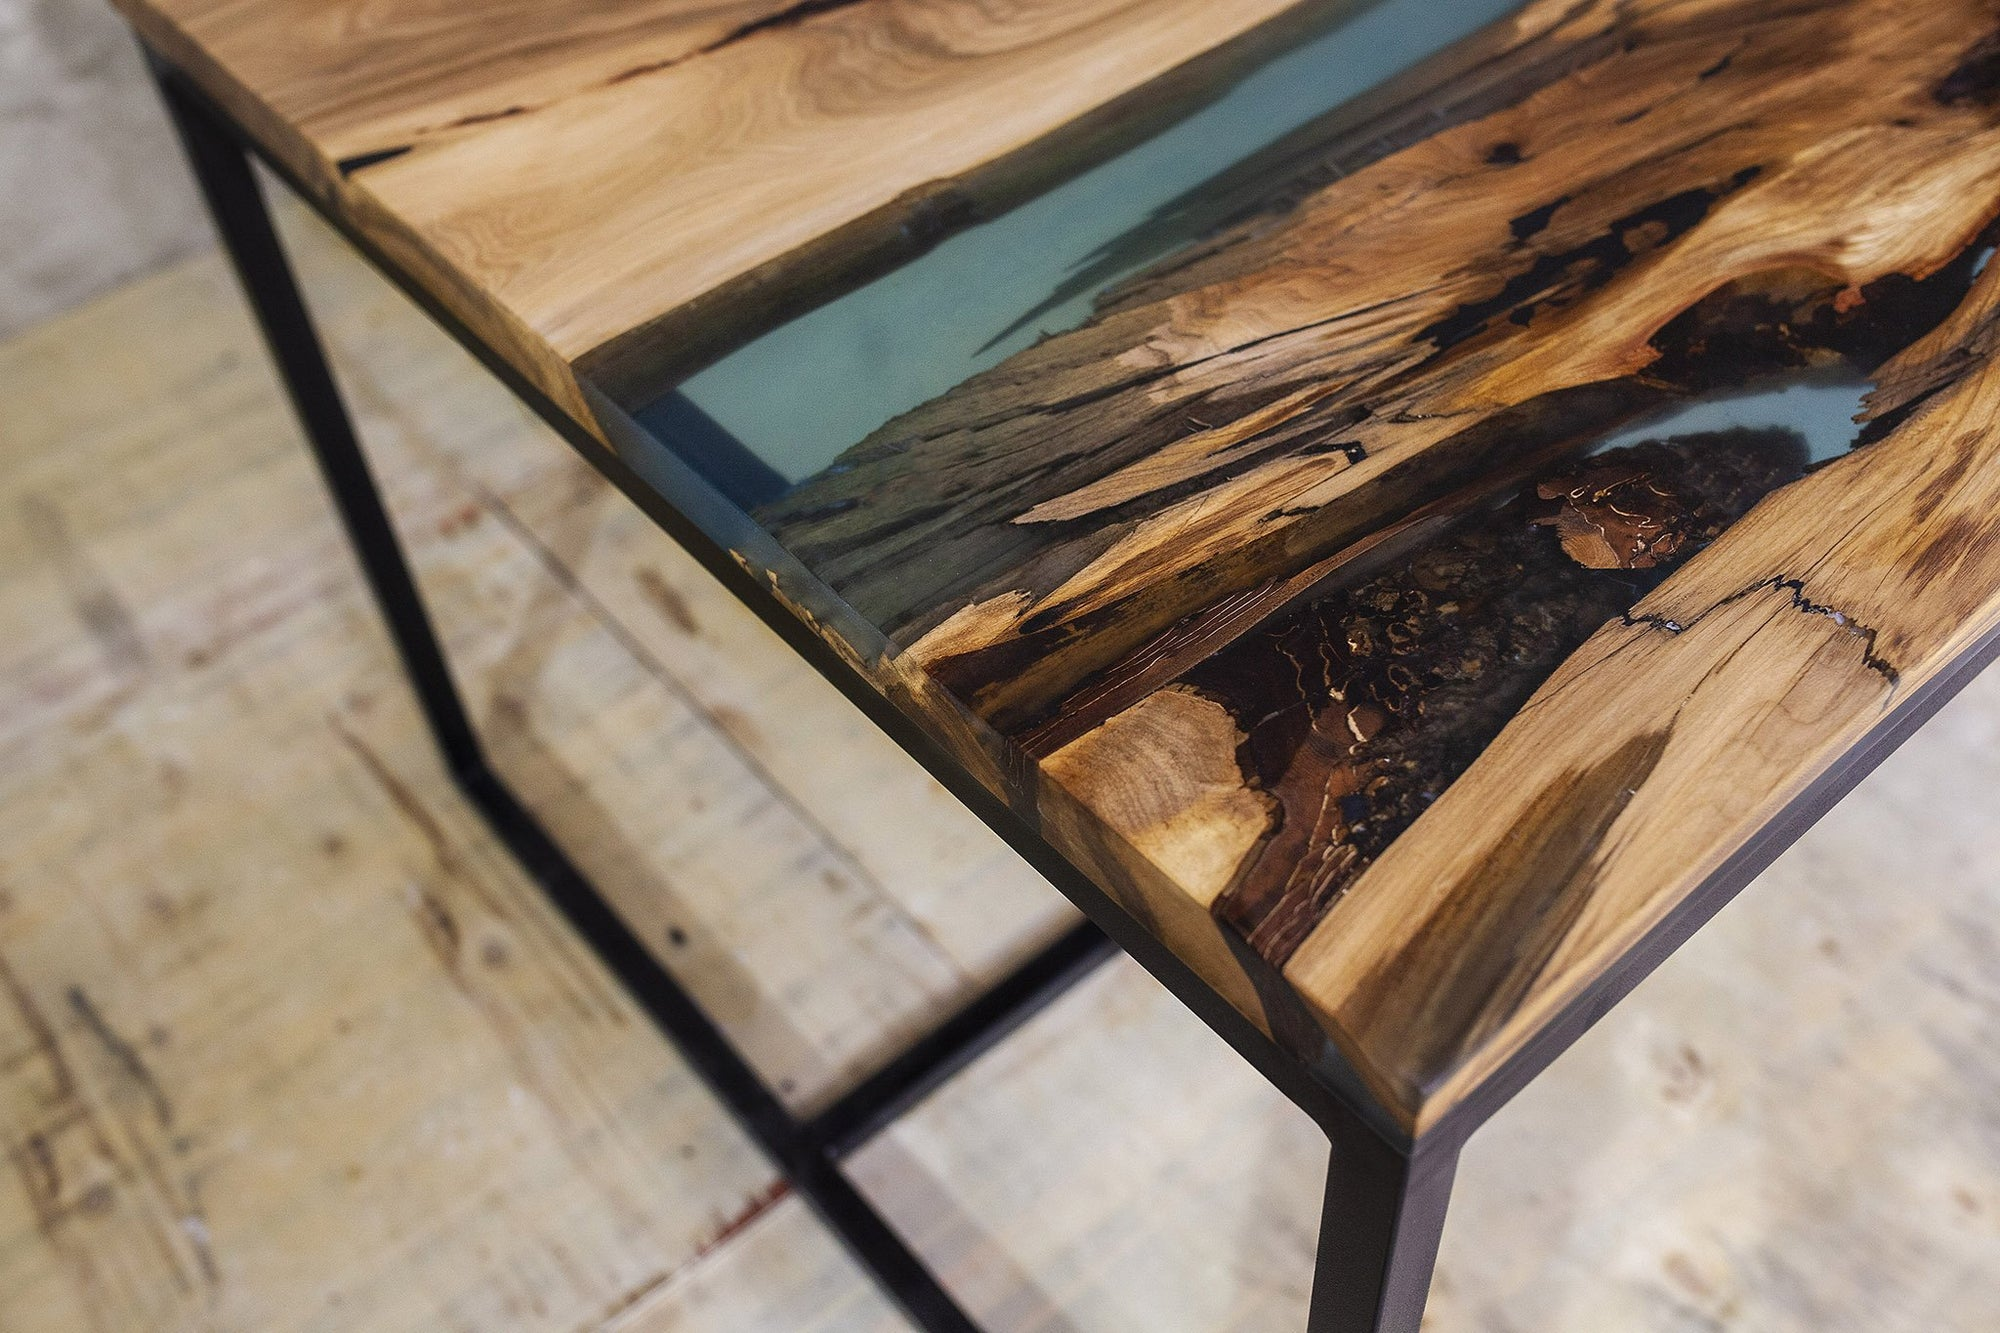 Wood Fused with Liquid Glass